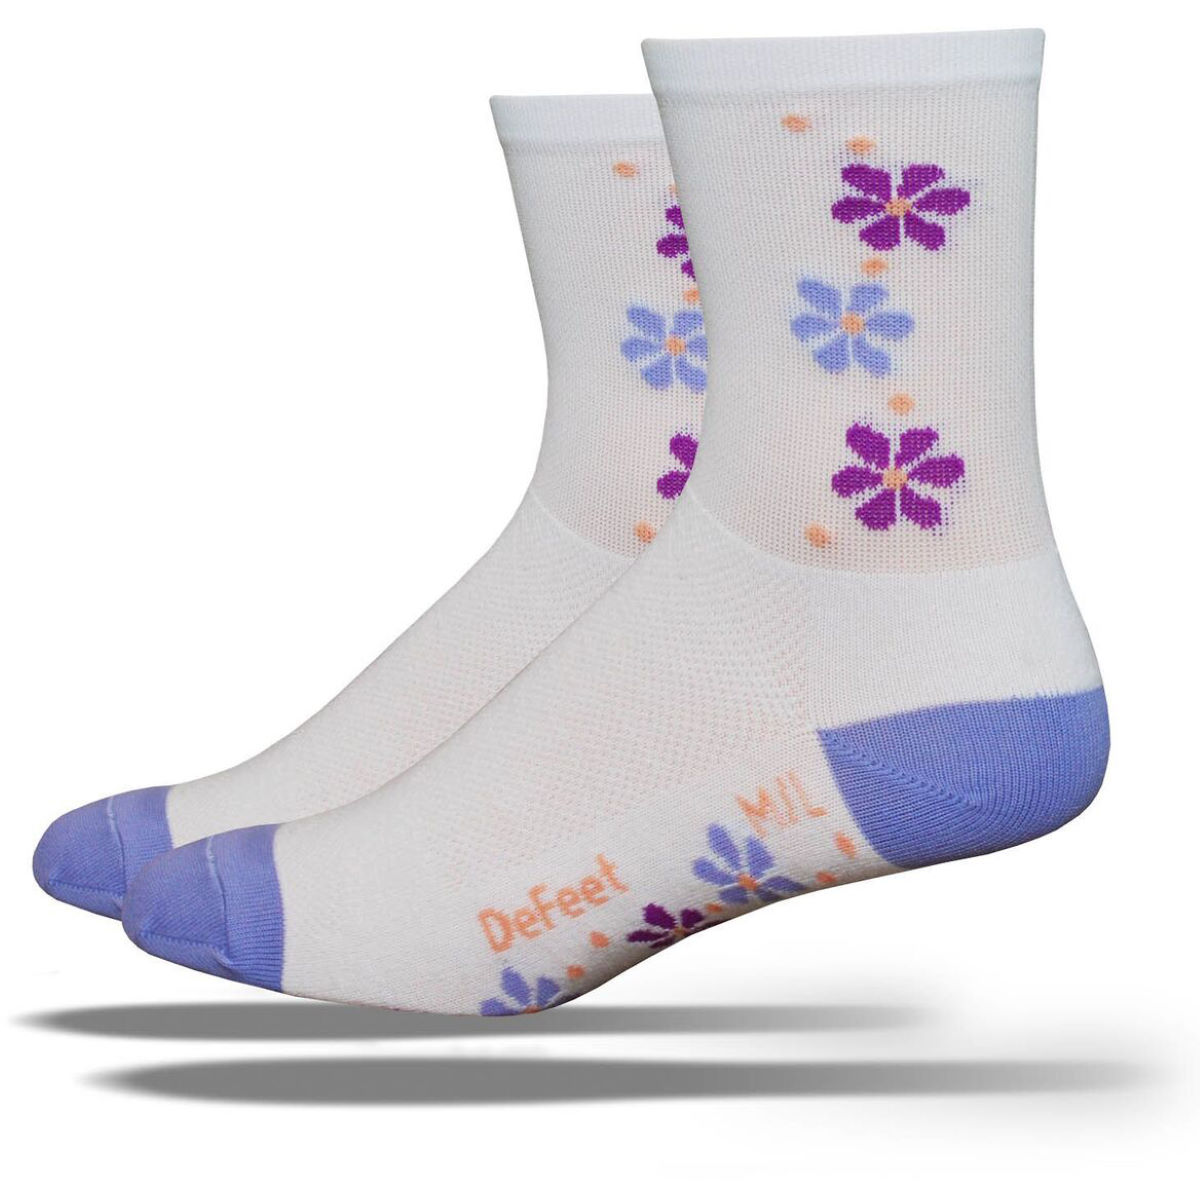 Chaussettes DeFeet Aireator Tall Pansy - M/L Blanc Chaussettes vélo